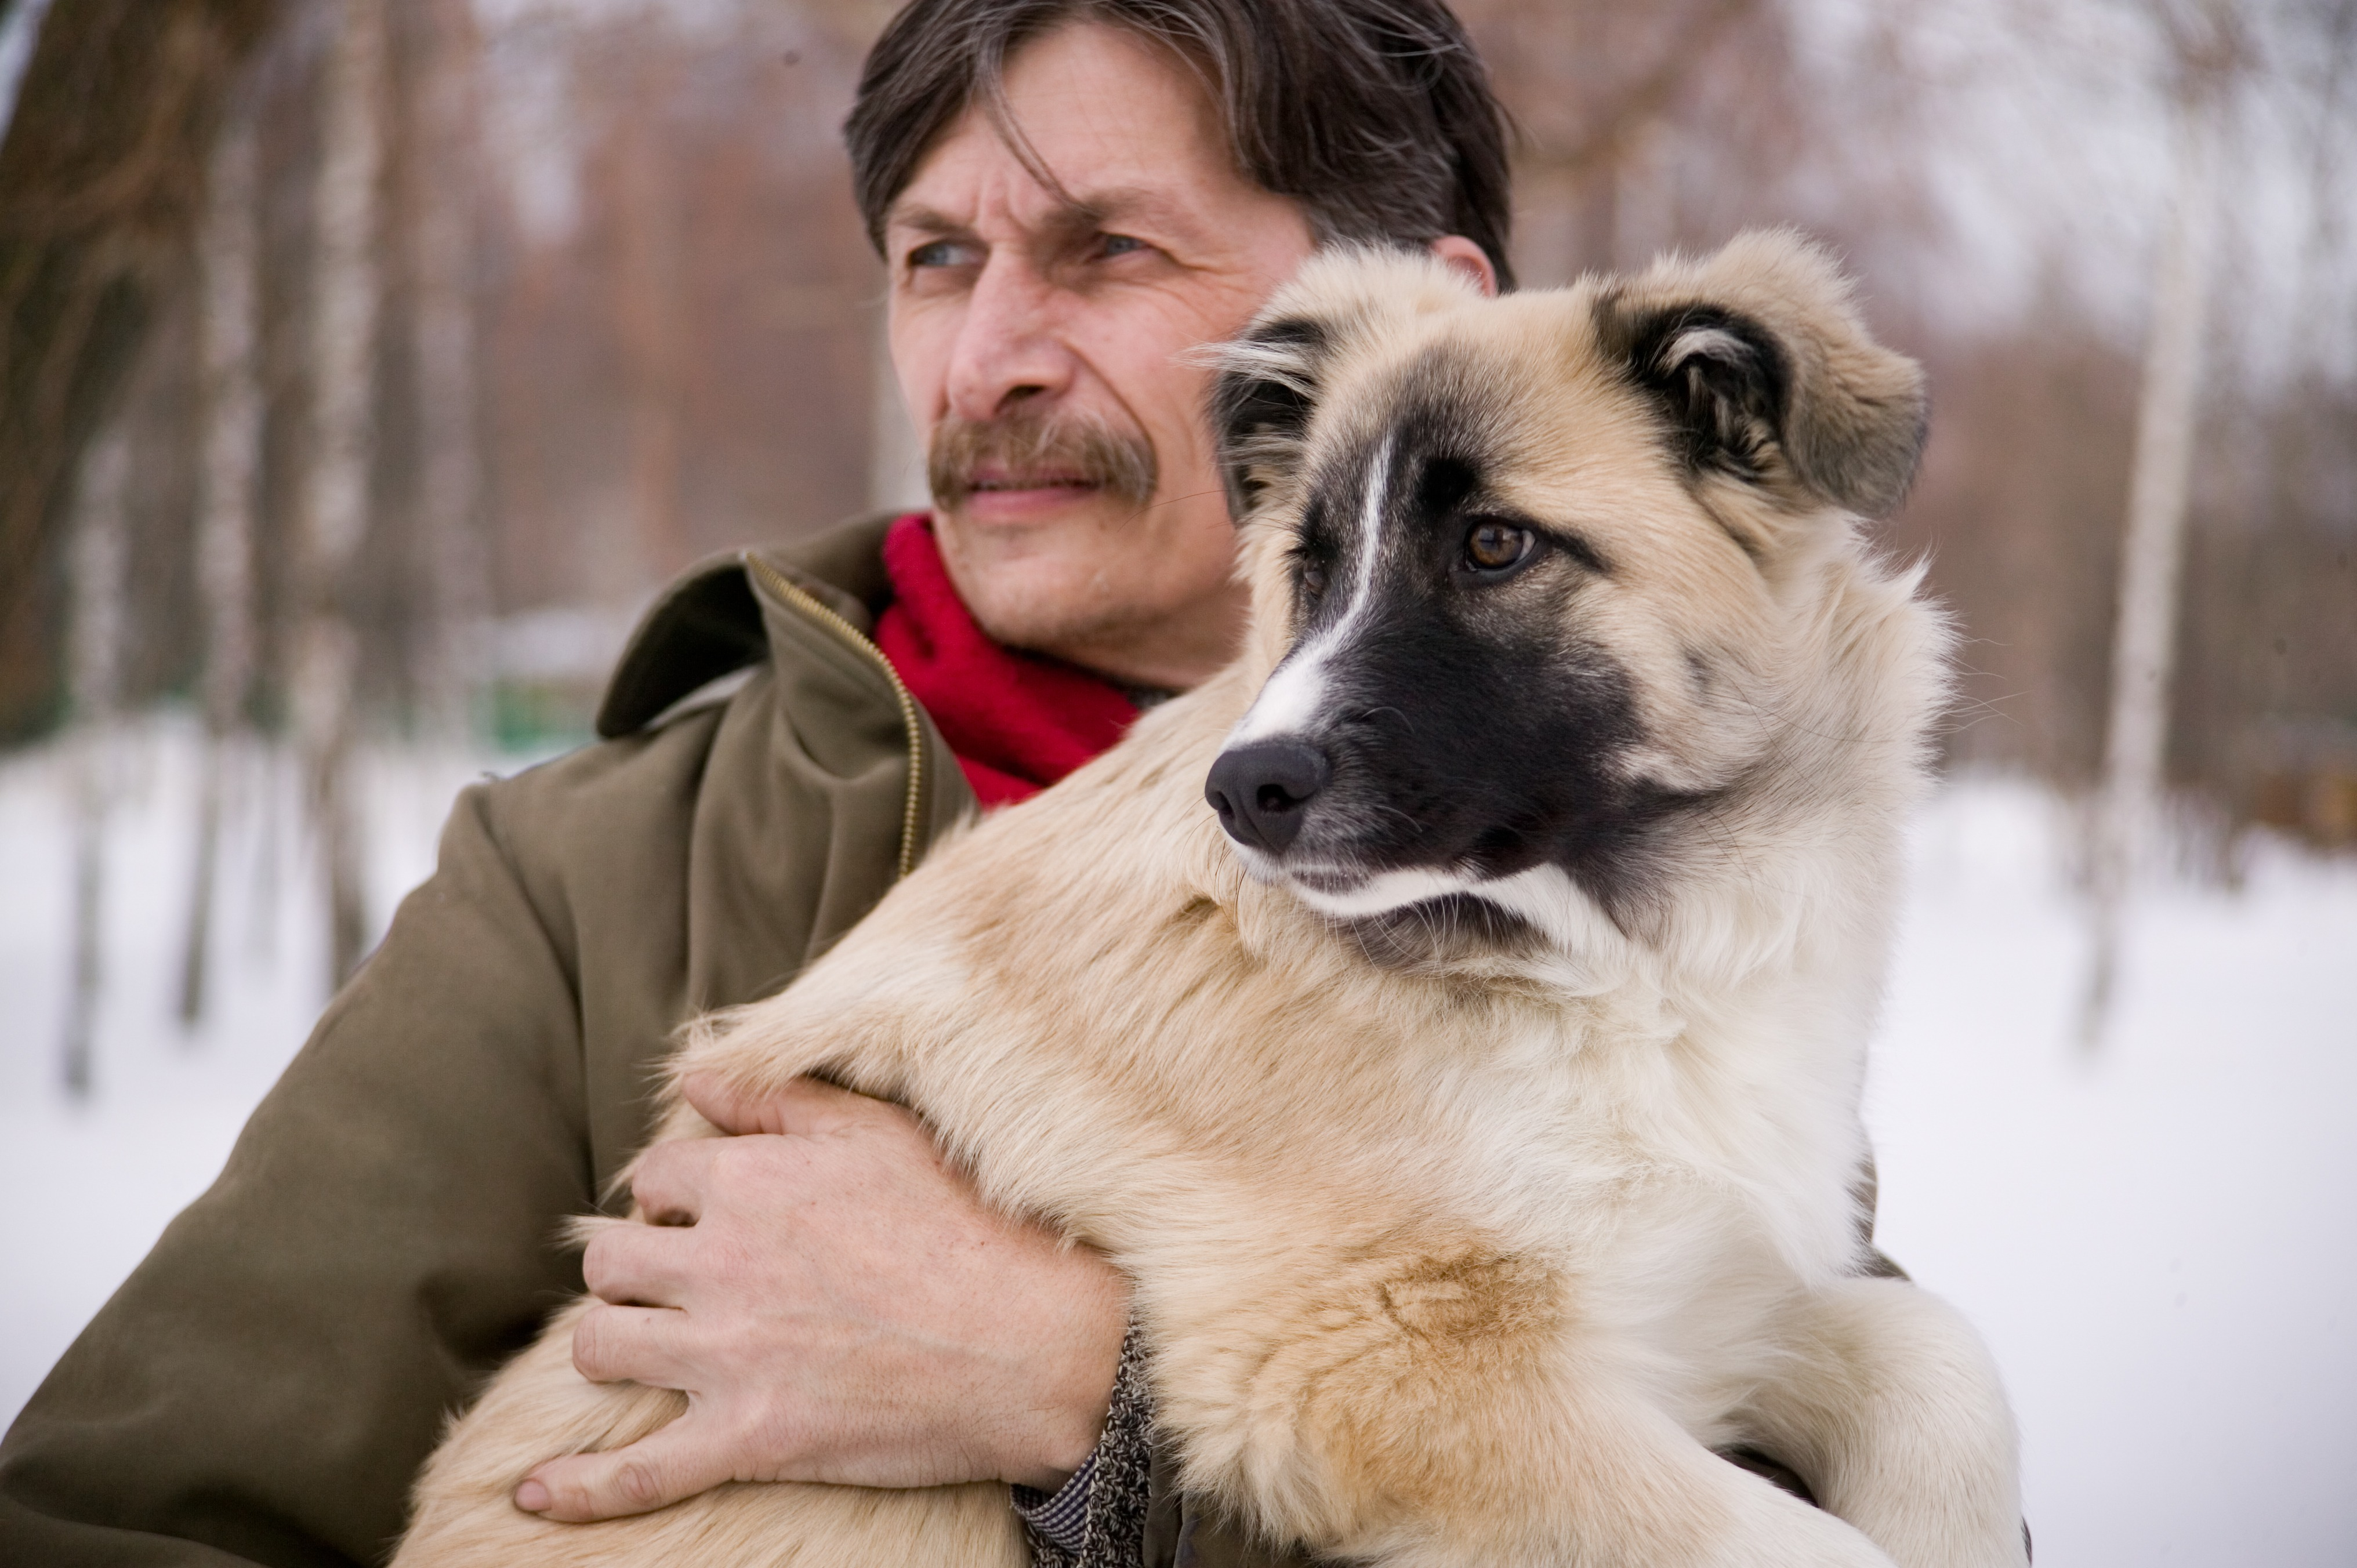 Free Images : people, puppy, male, animals, humanity, street dog ...